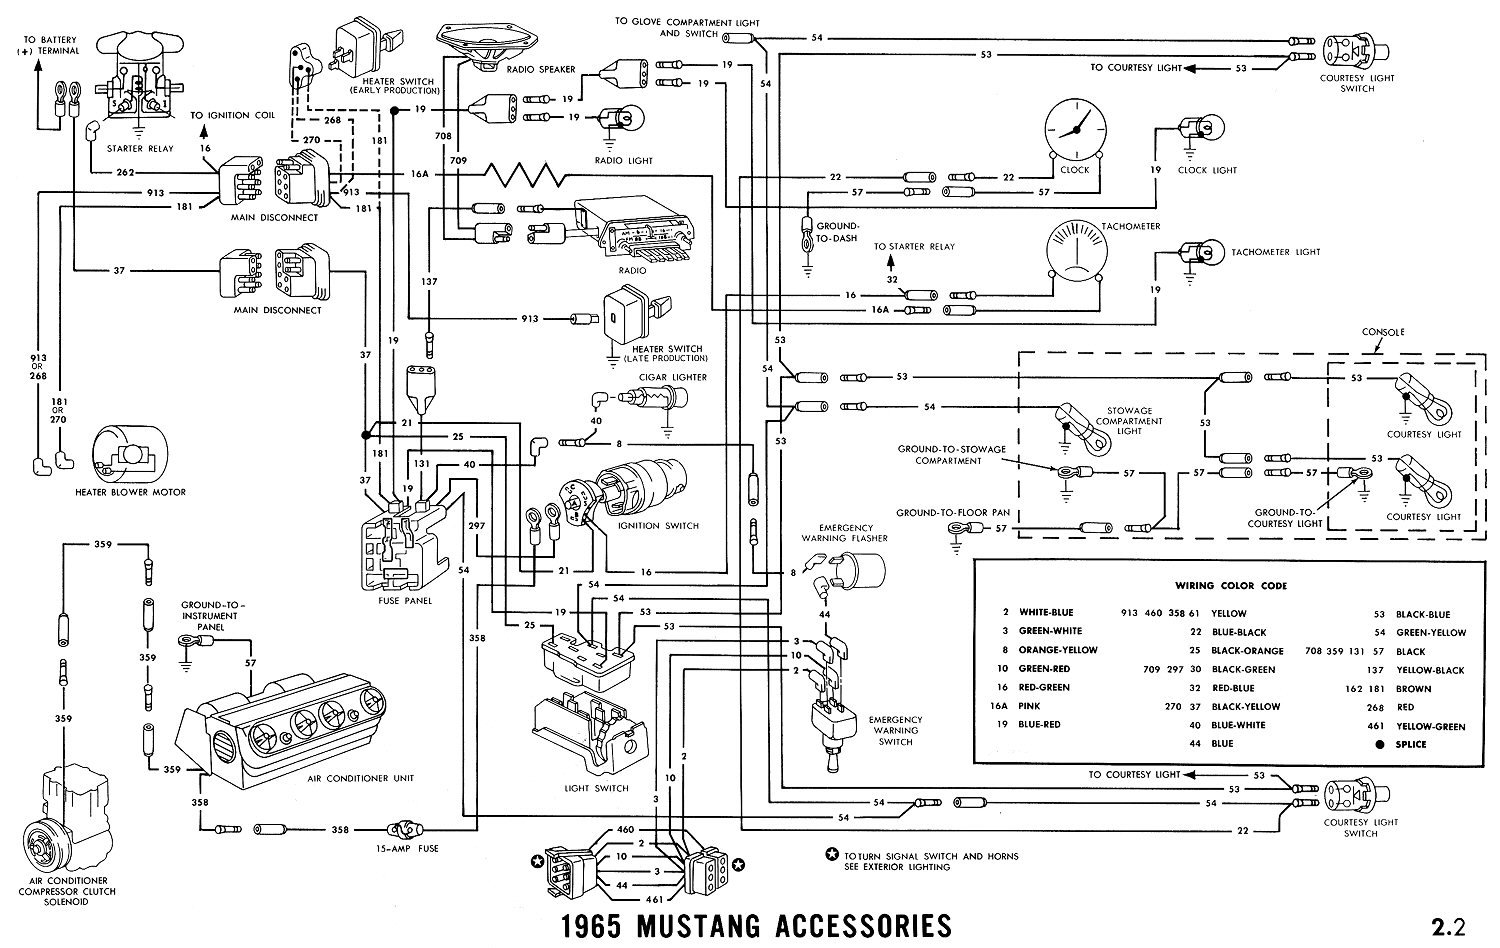 93554d1268999911 1965 mustang radio wiring connections 1965i wiring diagram for 1965 mustang readingrat net ford mustang radio wiring diagram at n-0.co